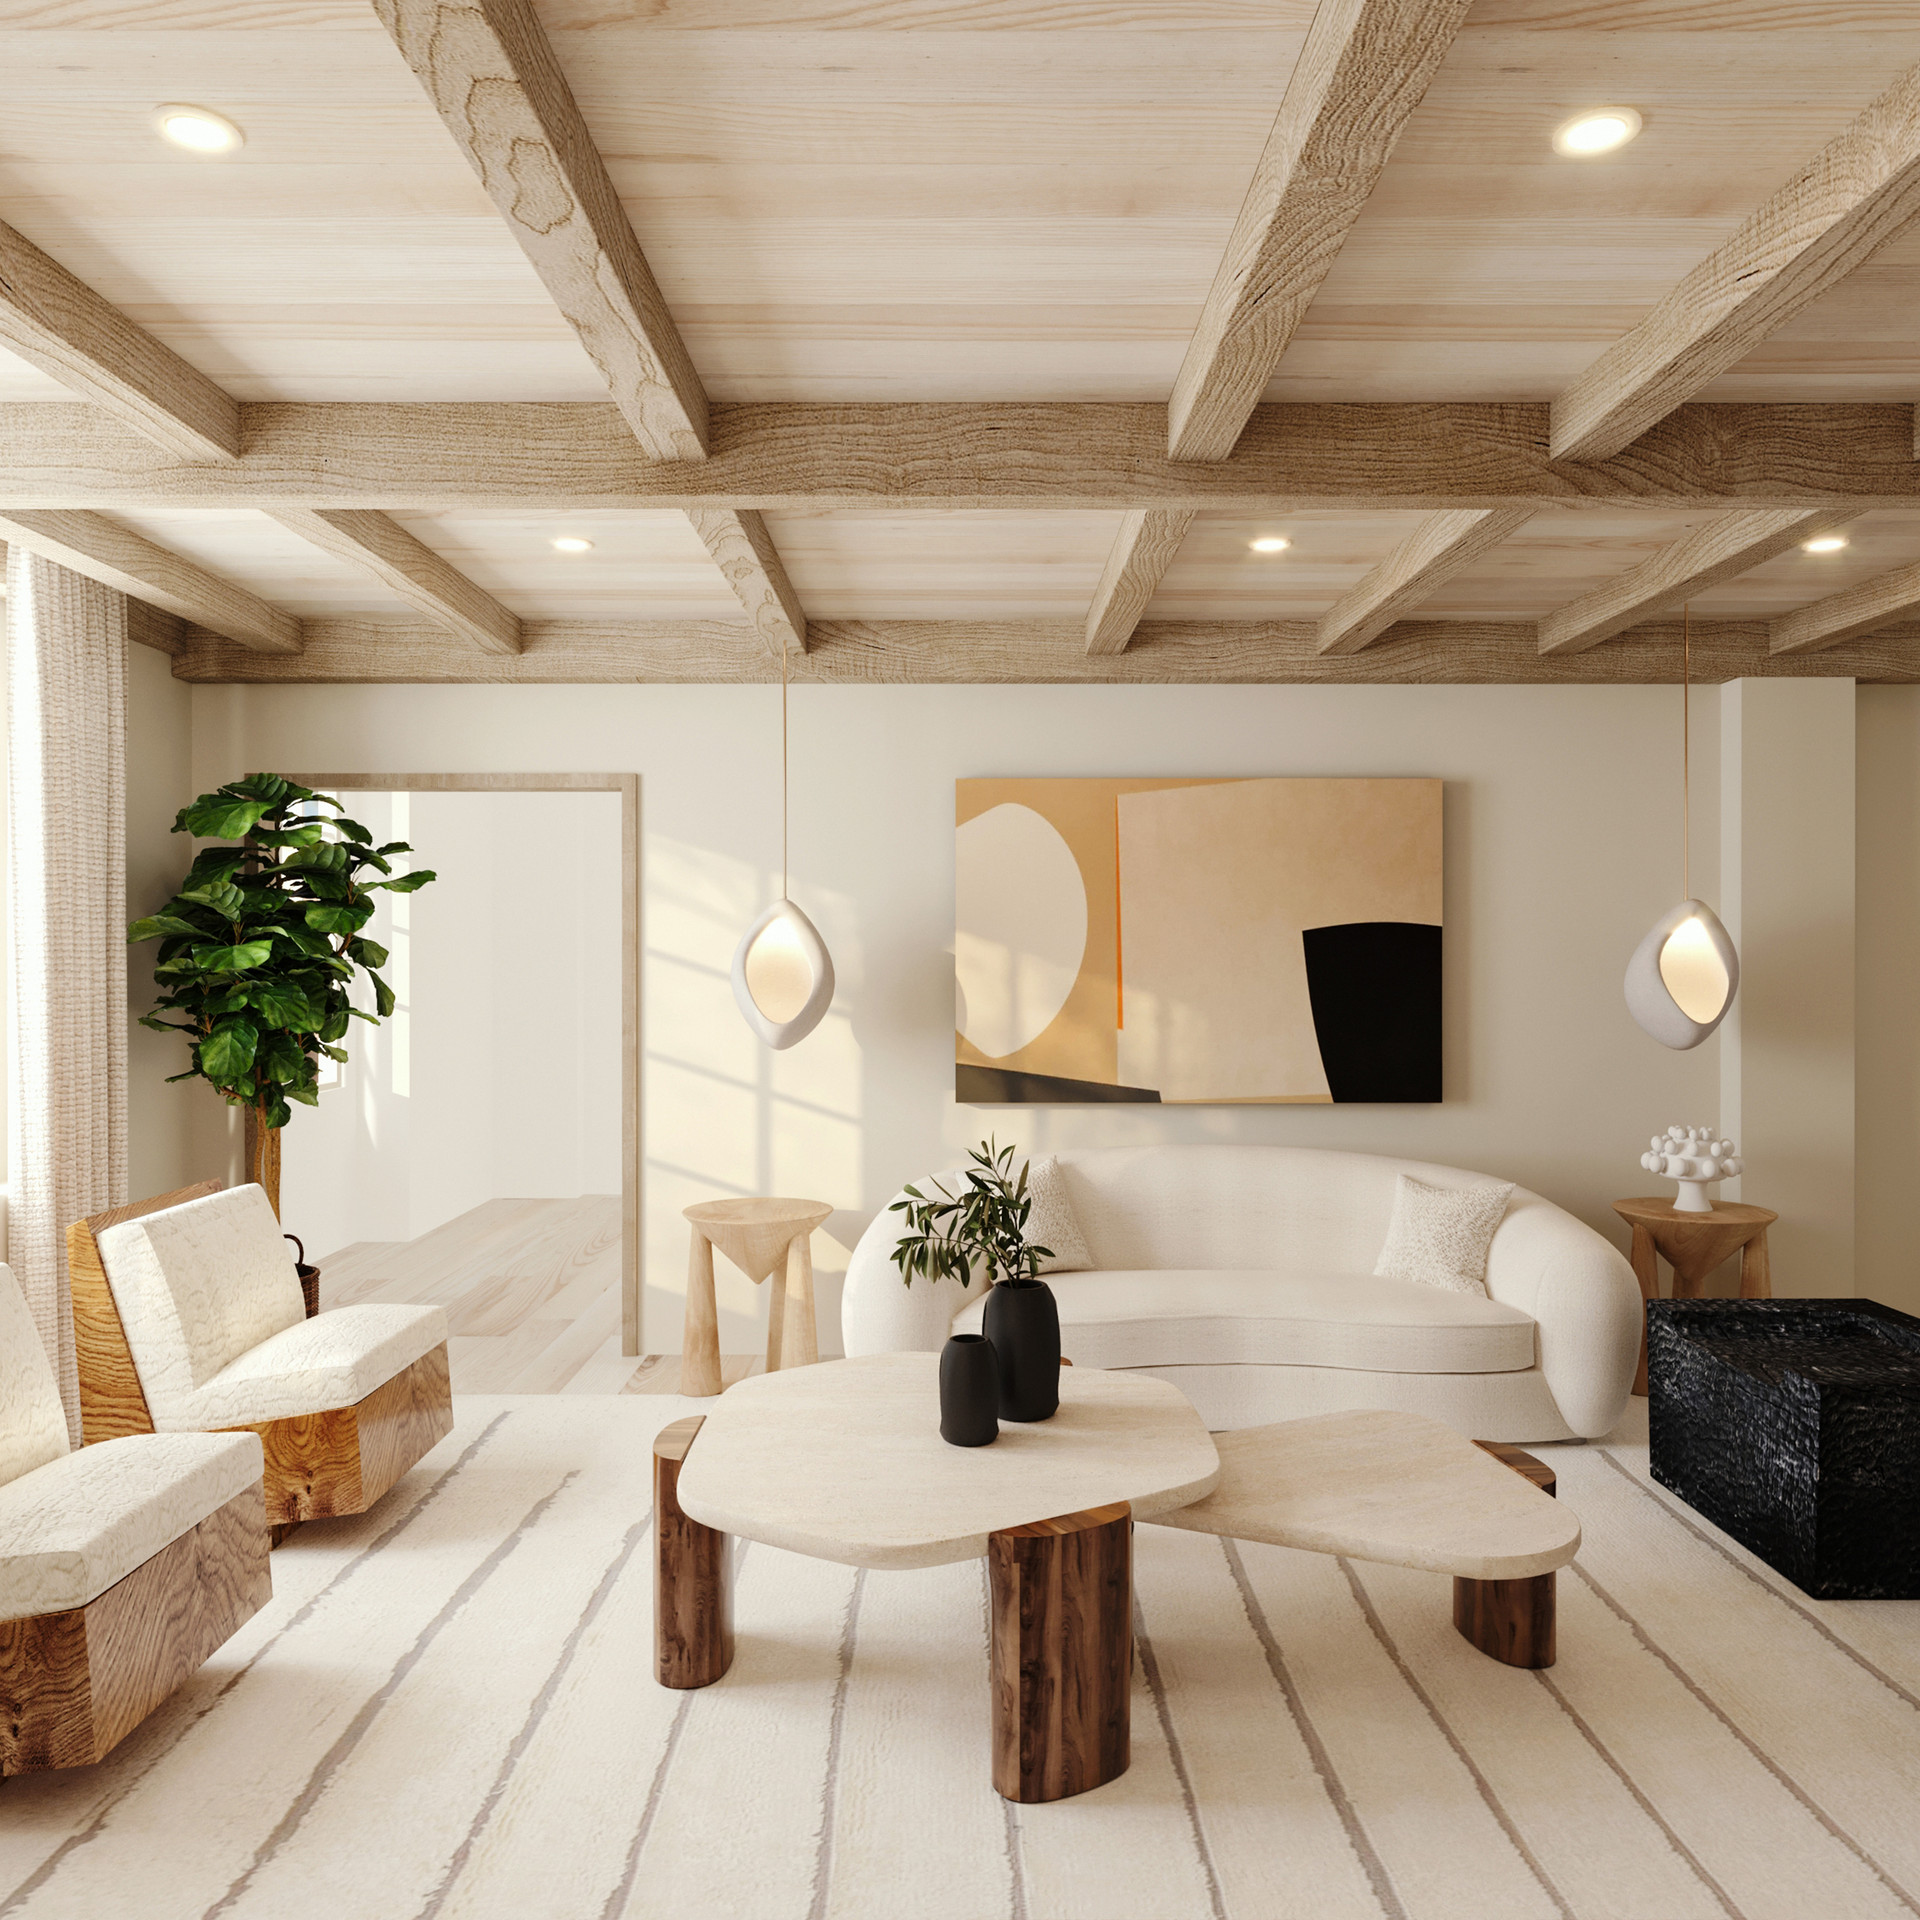 Living Room revisualization